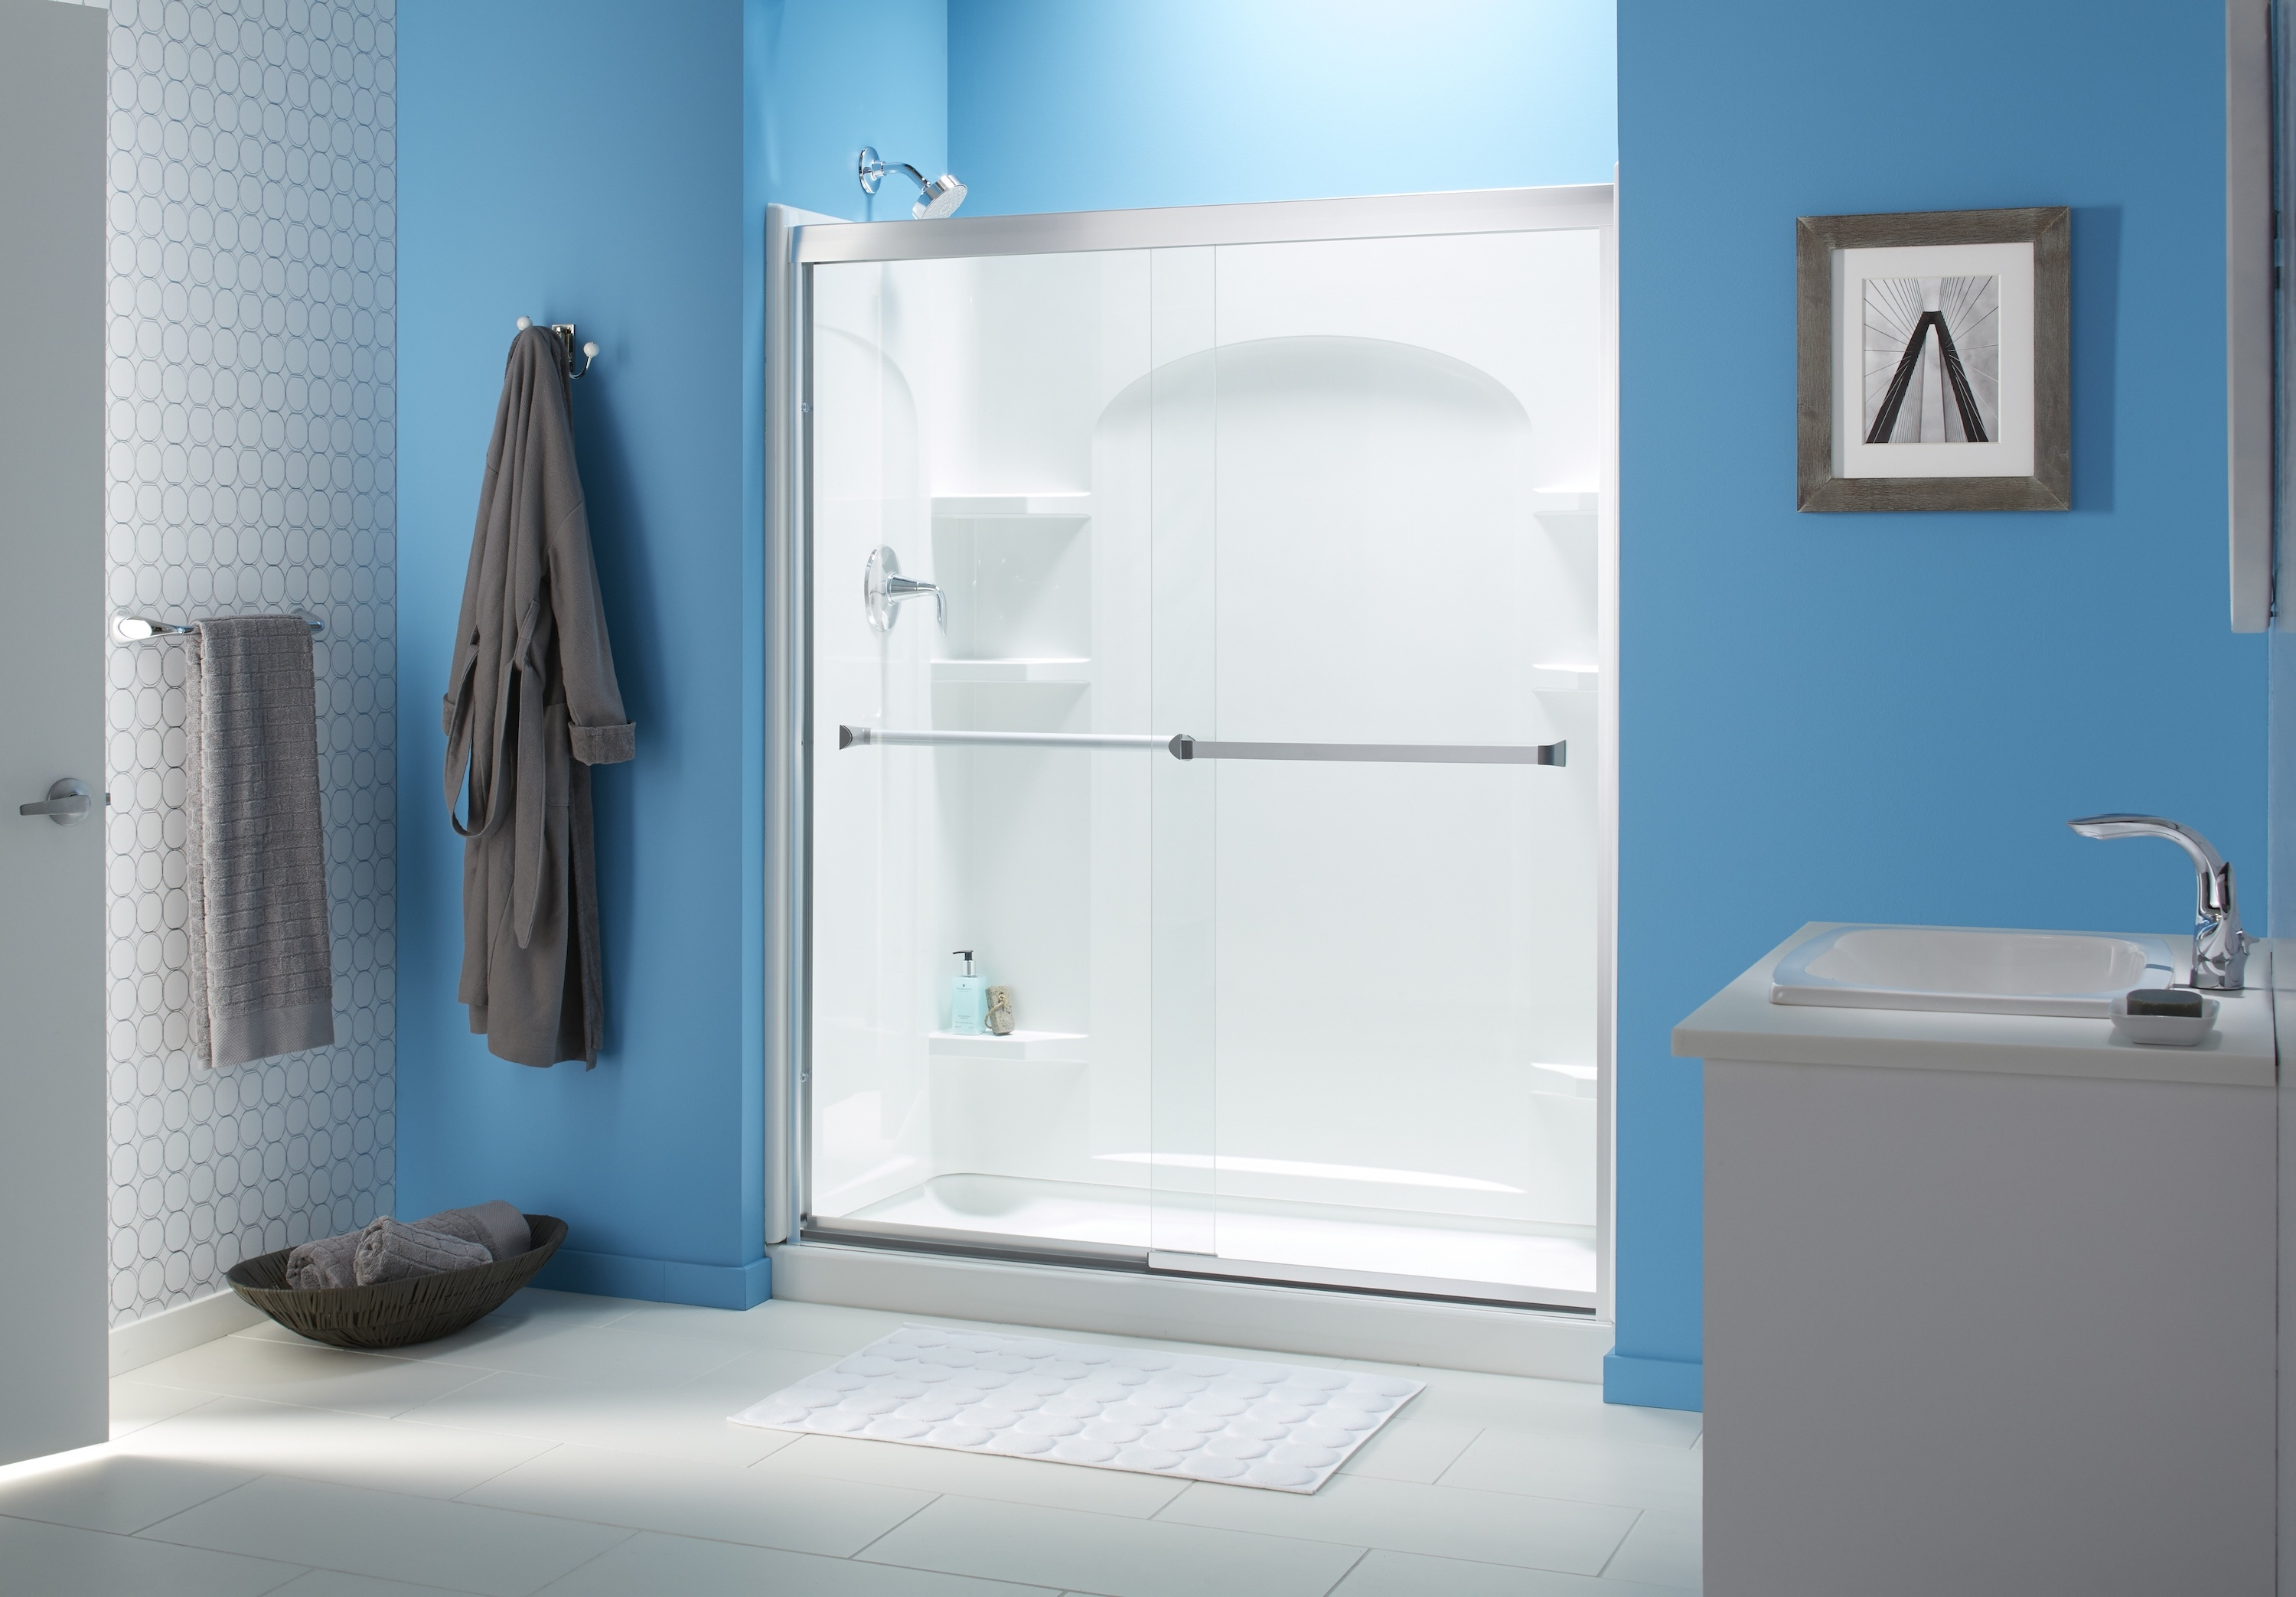 Kohler Levity Sliding Bath And Shower Doorspros and cons of frameless shower doors angies list